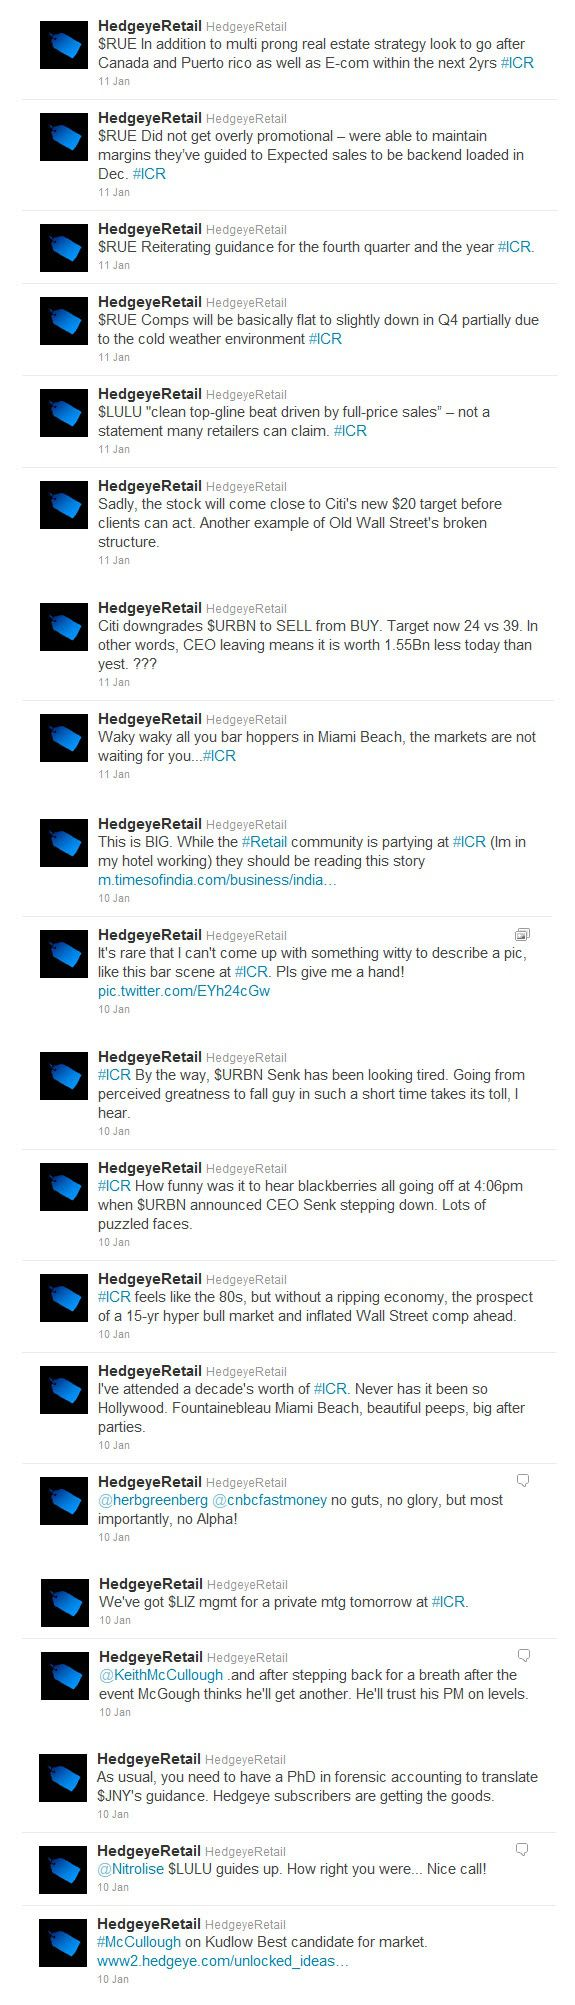 @HedgeyeRetail #ICR (Updated) - TWEET image 3